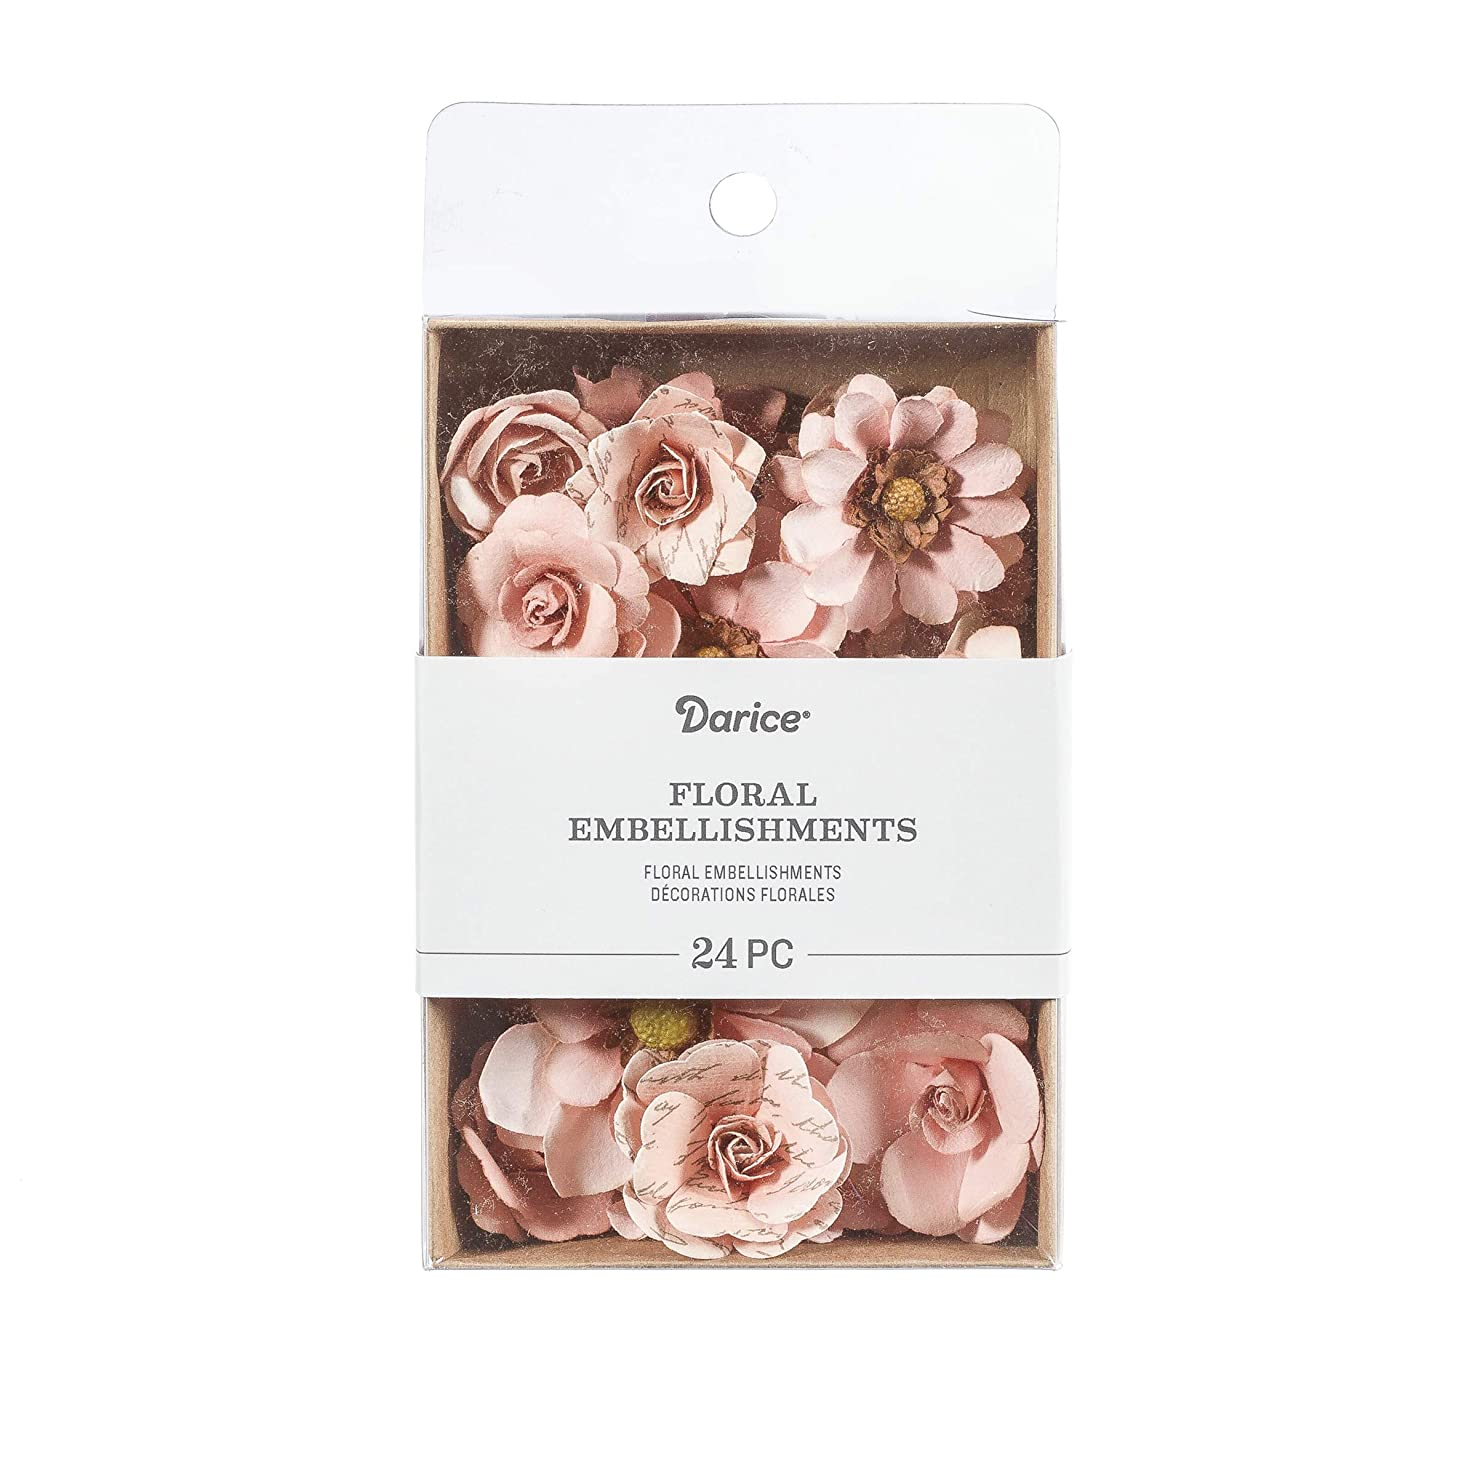 Darice 30061966 Mulberry Floral Embellishments: Pink, 1.75 inches, 24 Pack